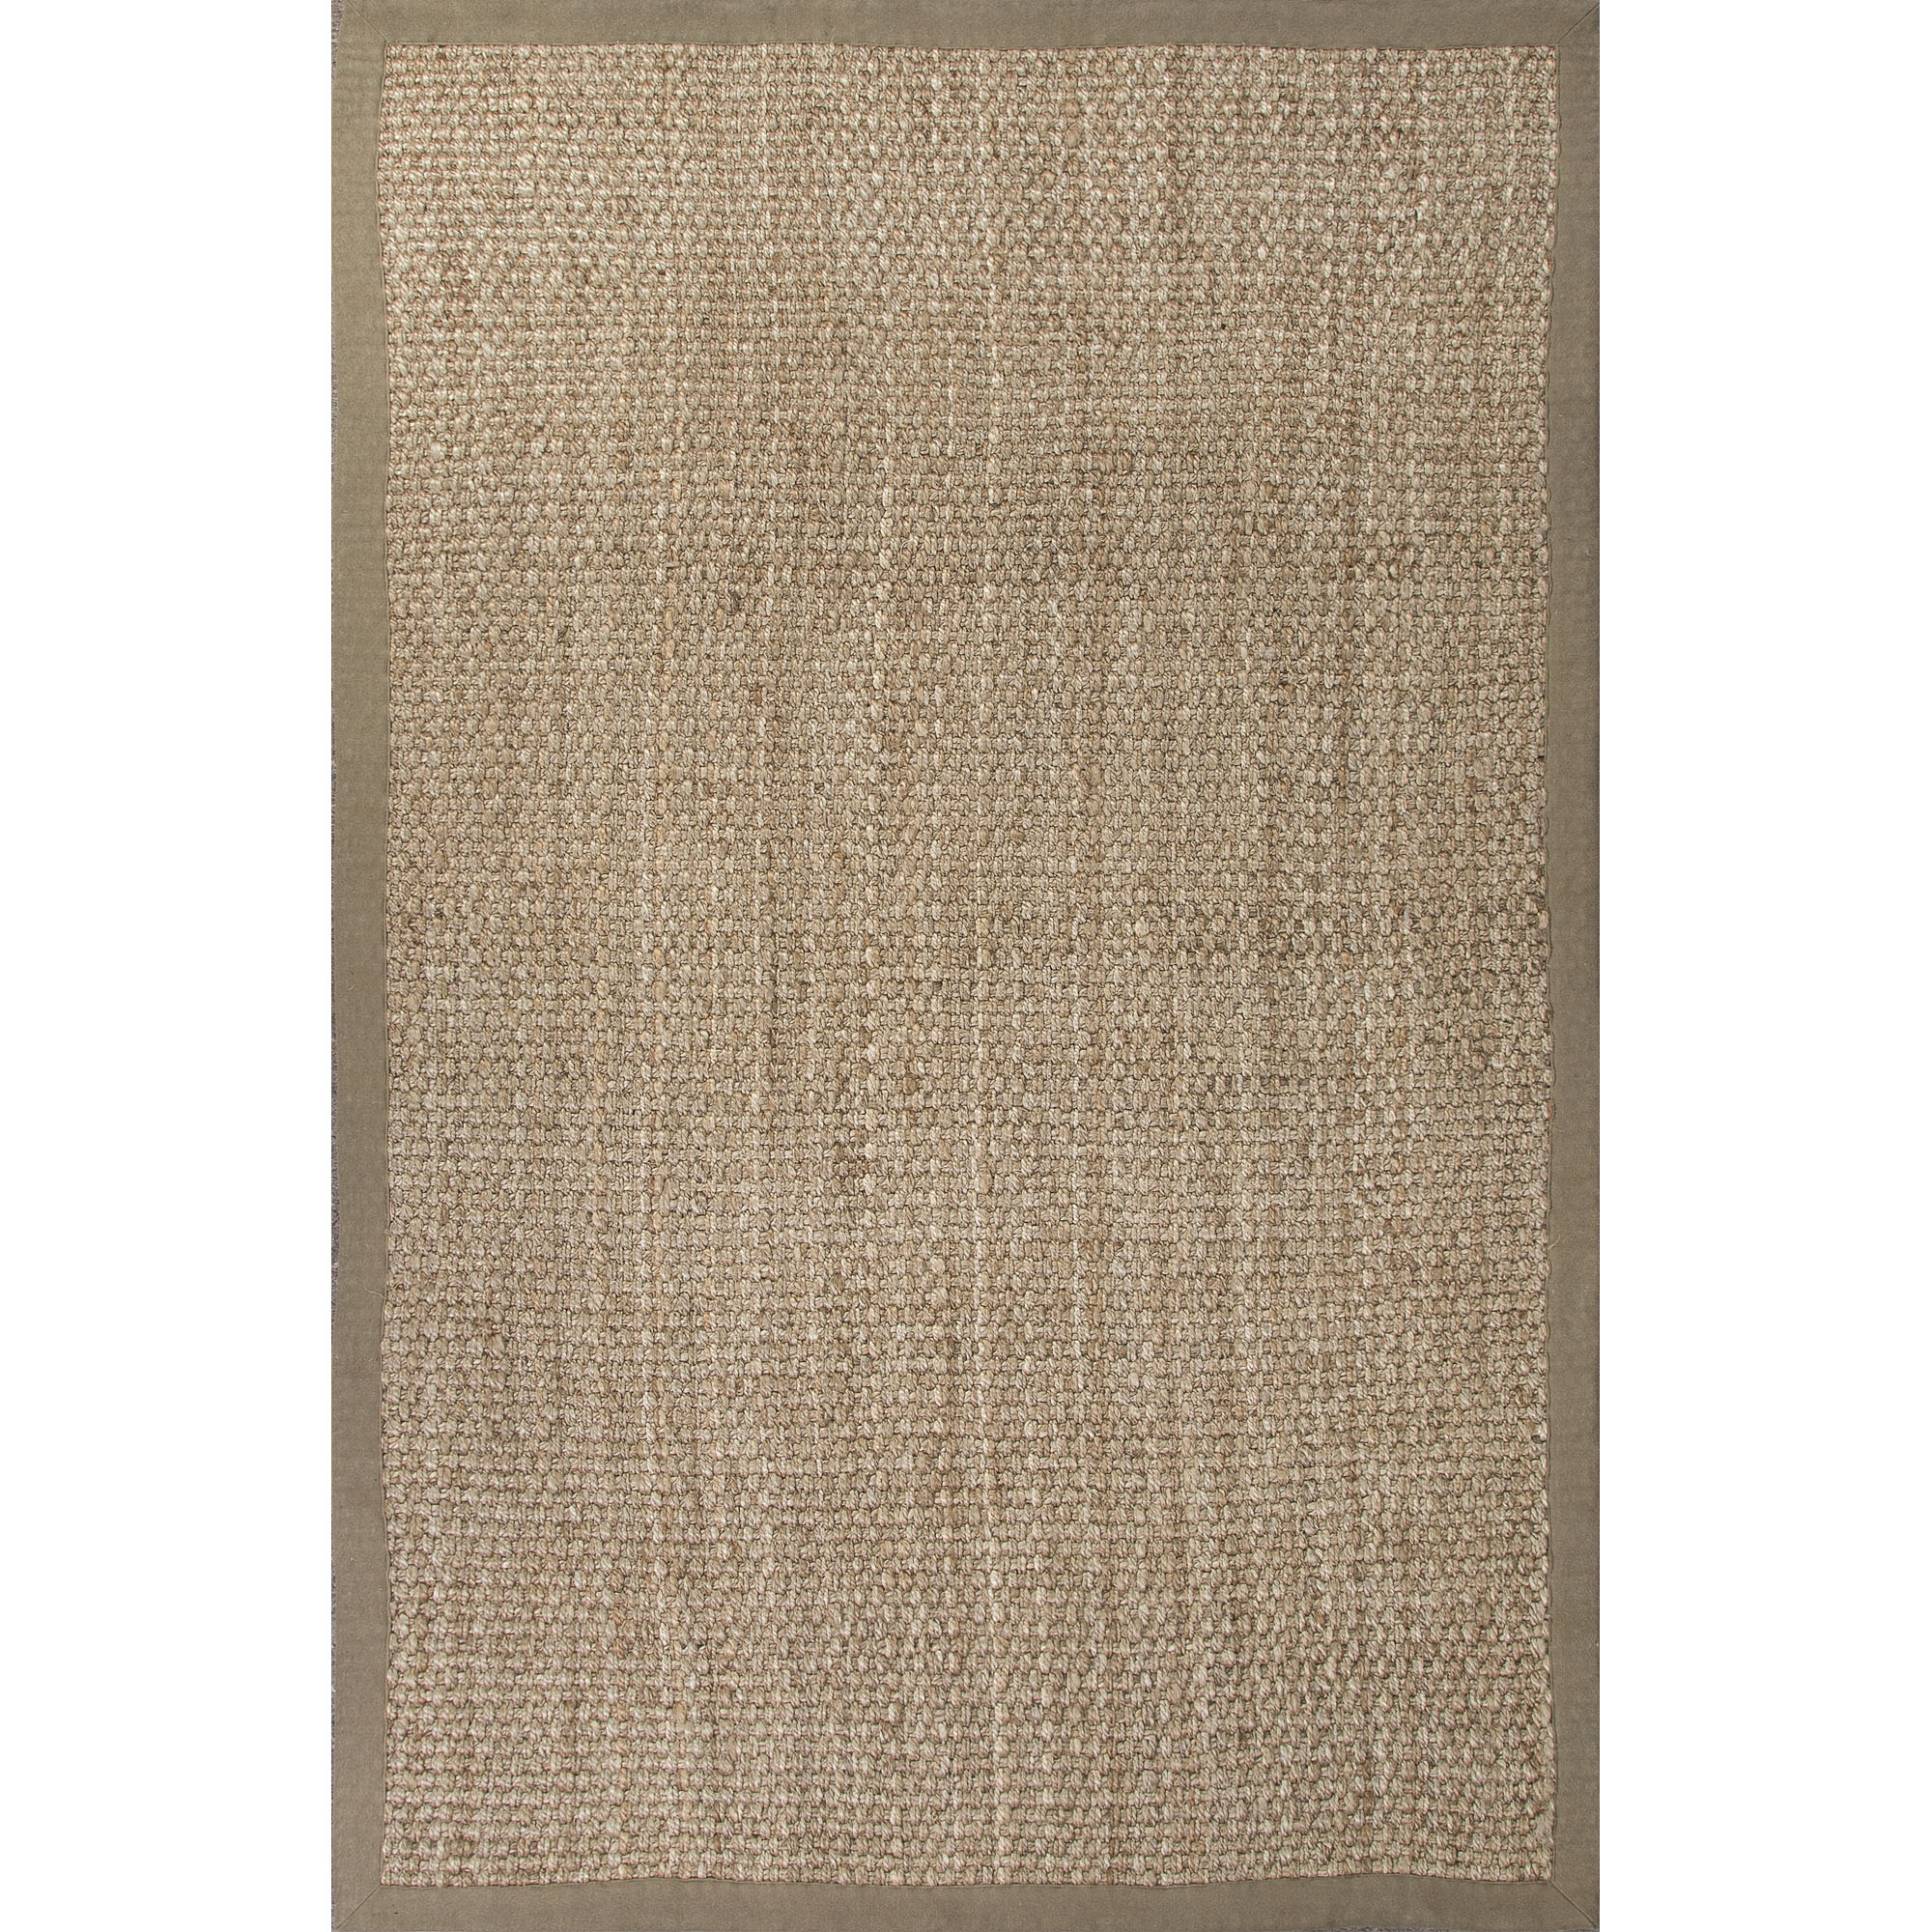 Naturals Lucia 5 x 8 Rug by JAIPUR Living at Malouf Furniture Co.